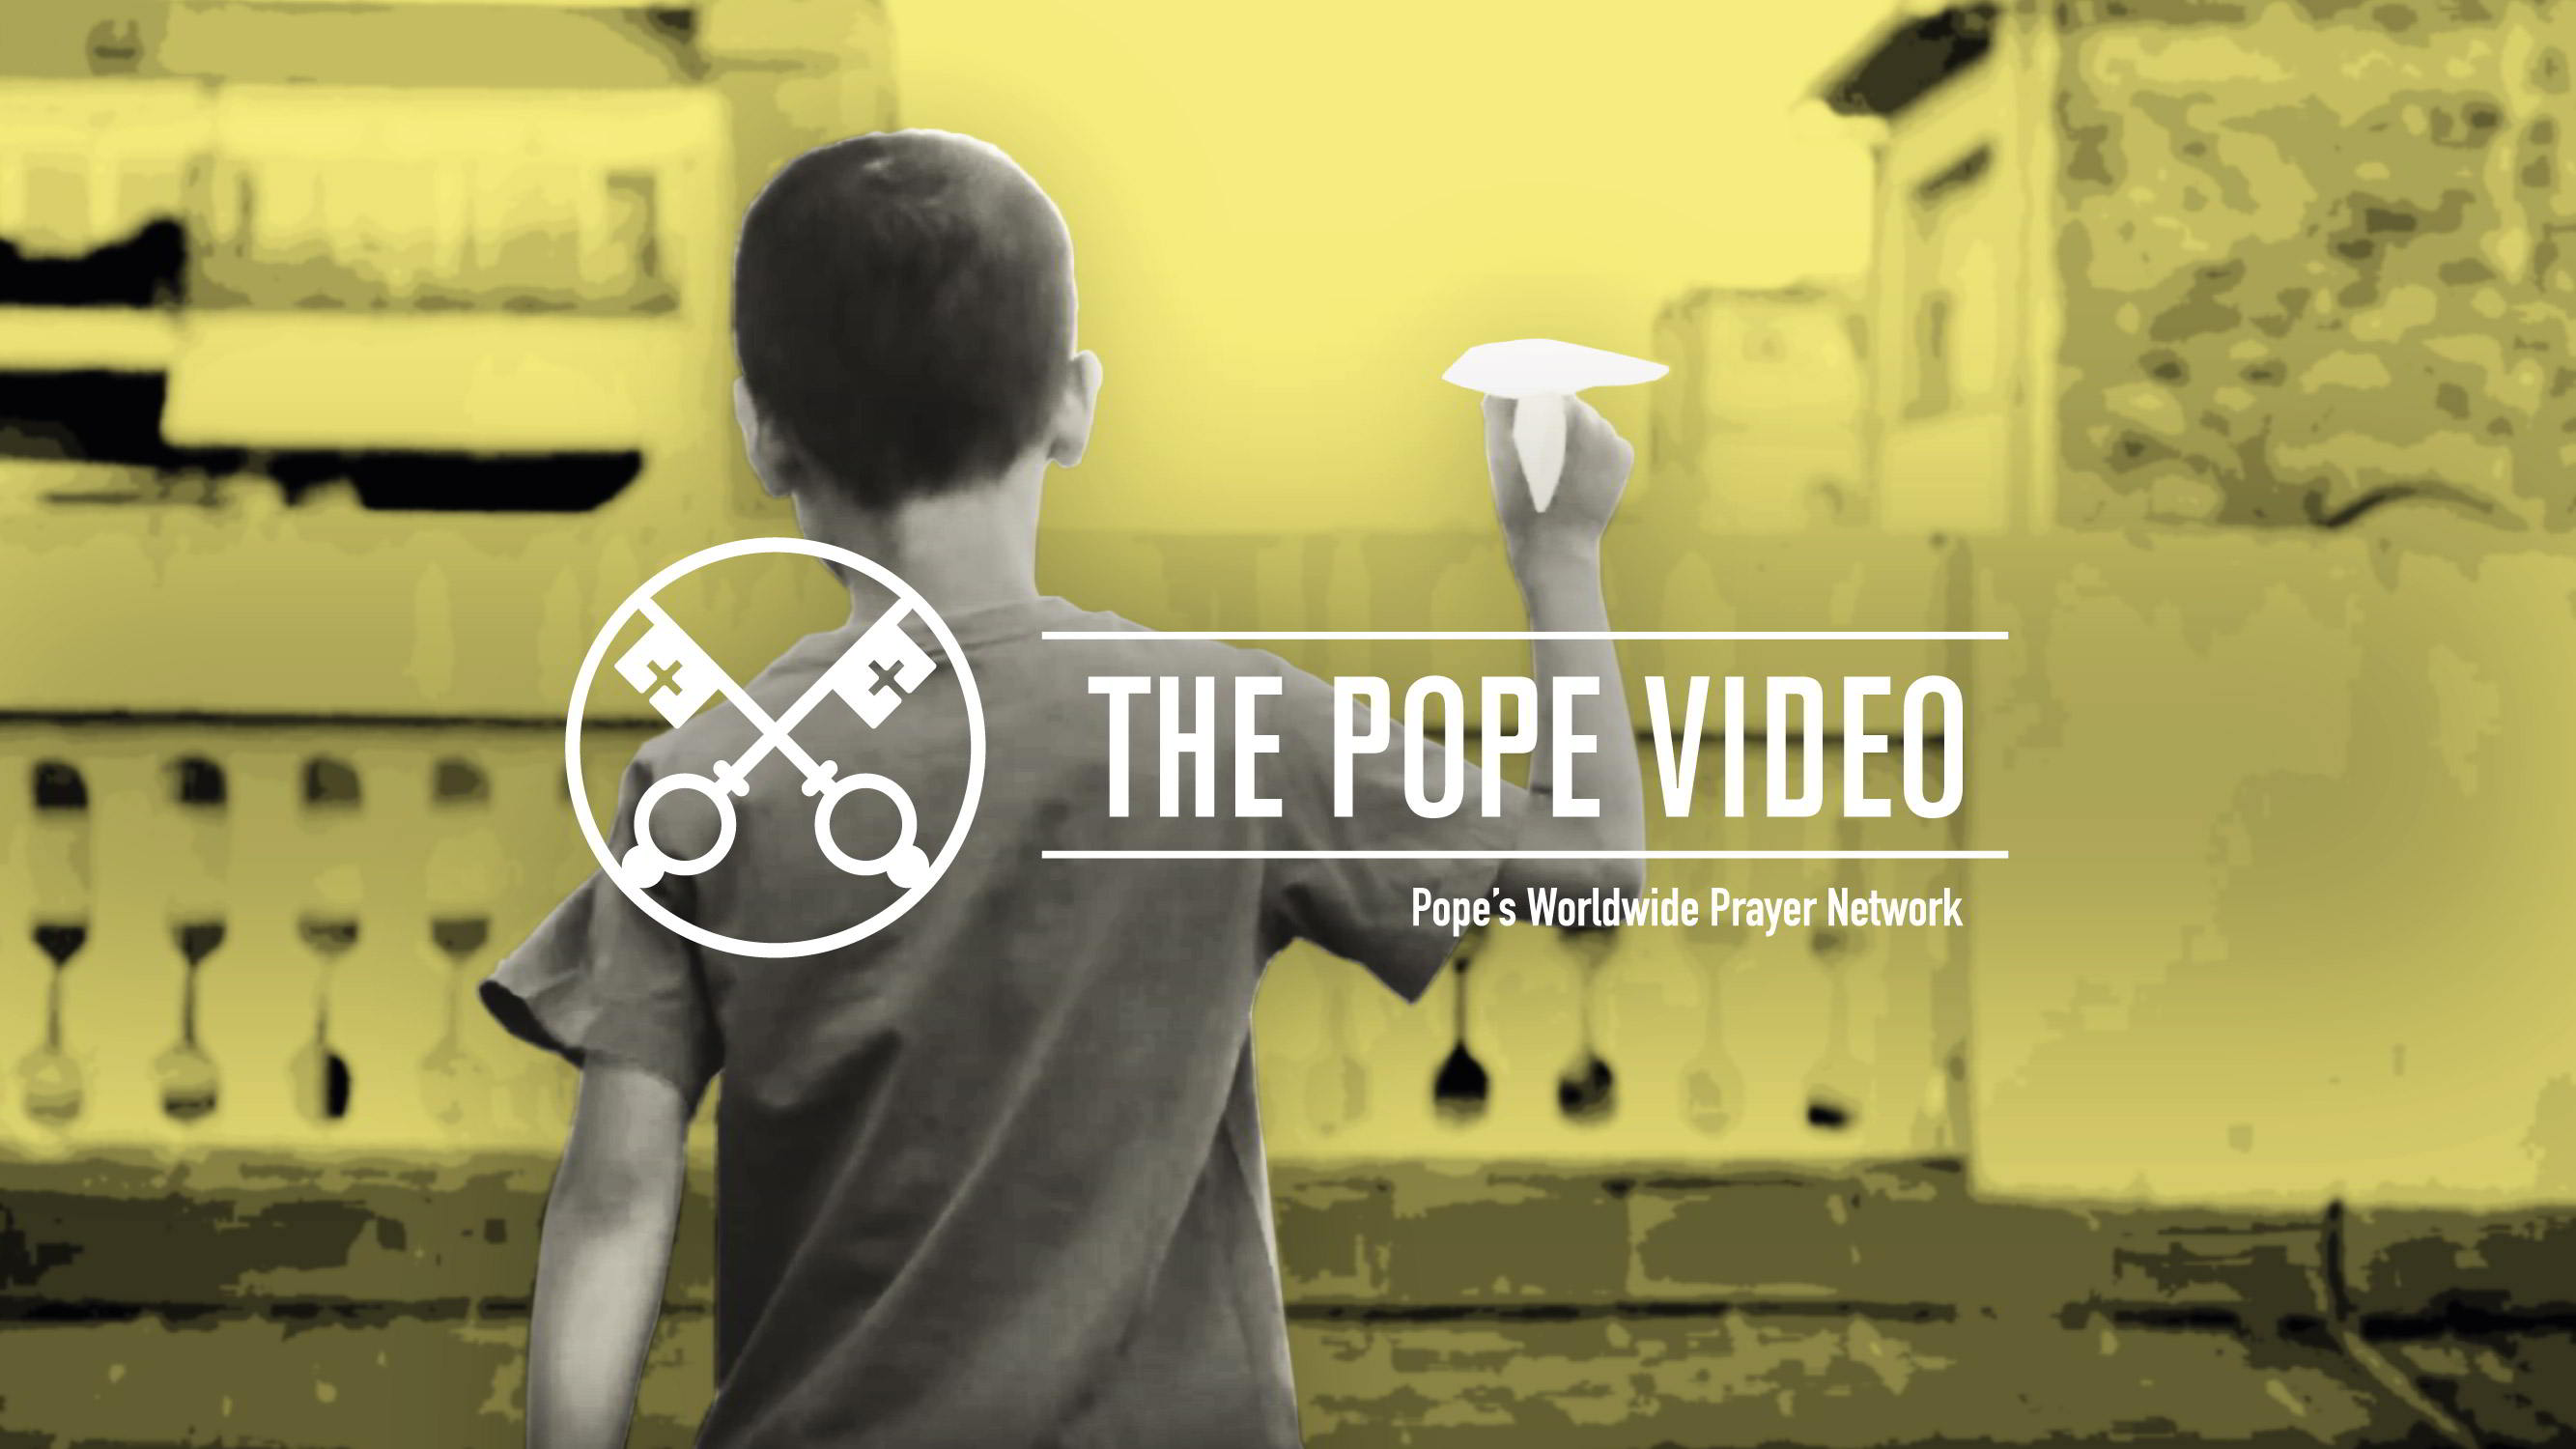 Official-Image-TPV-10-2019-EN-The-Pope-Video-Missionary-Spring-in-the-Church